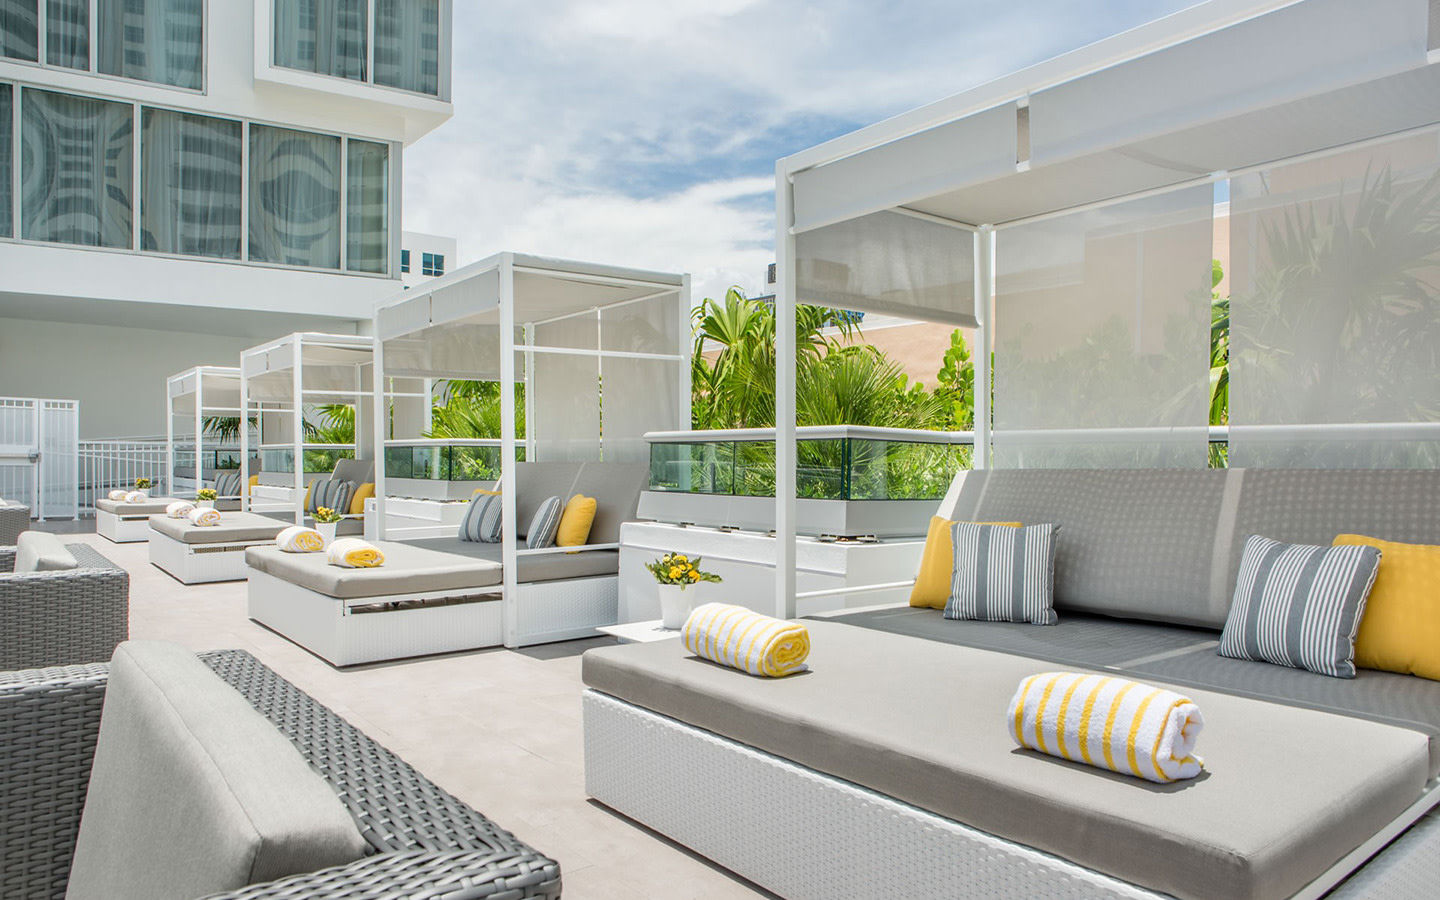 Rooftop Deck Pool Cabanas